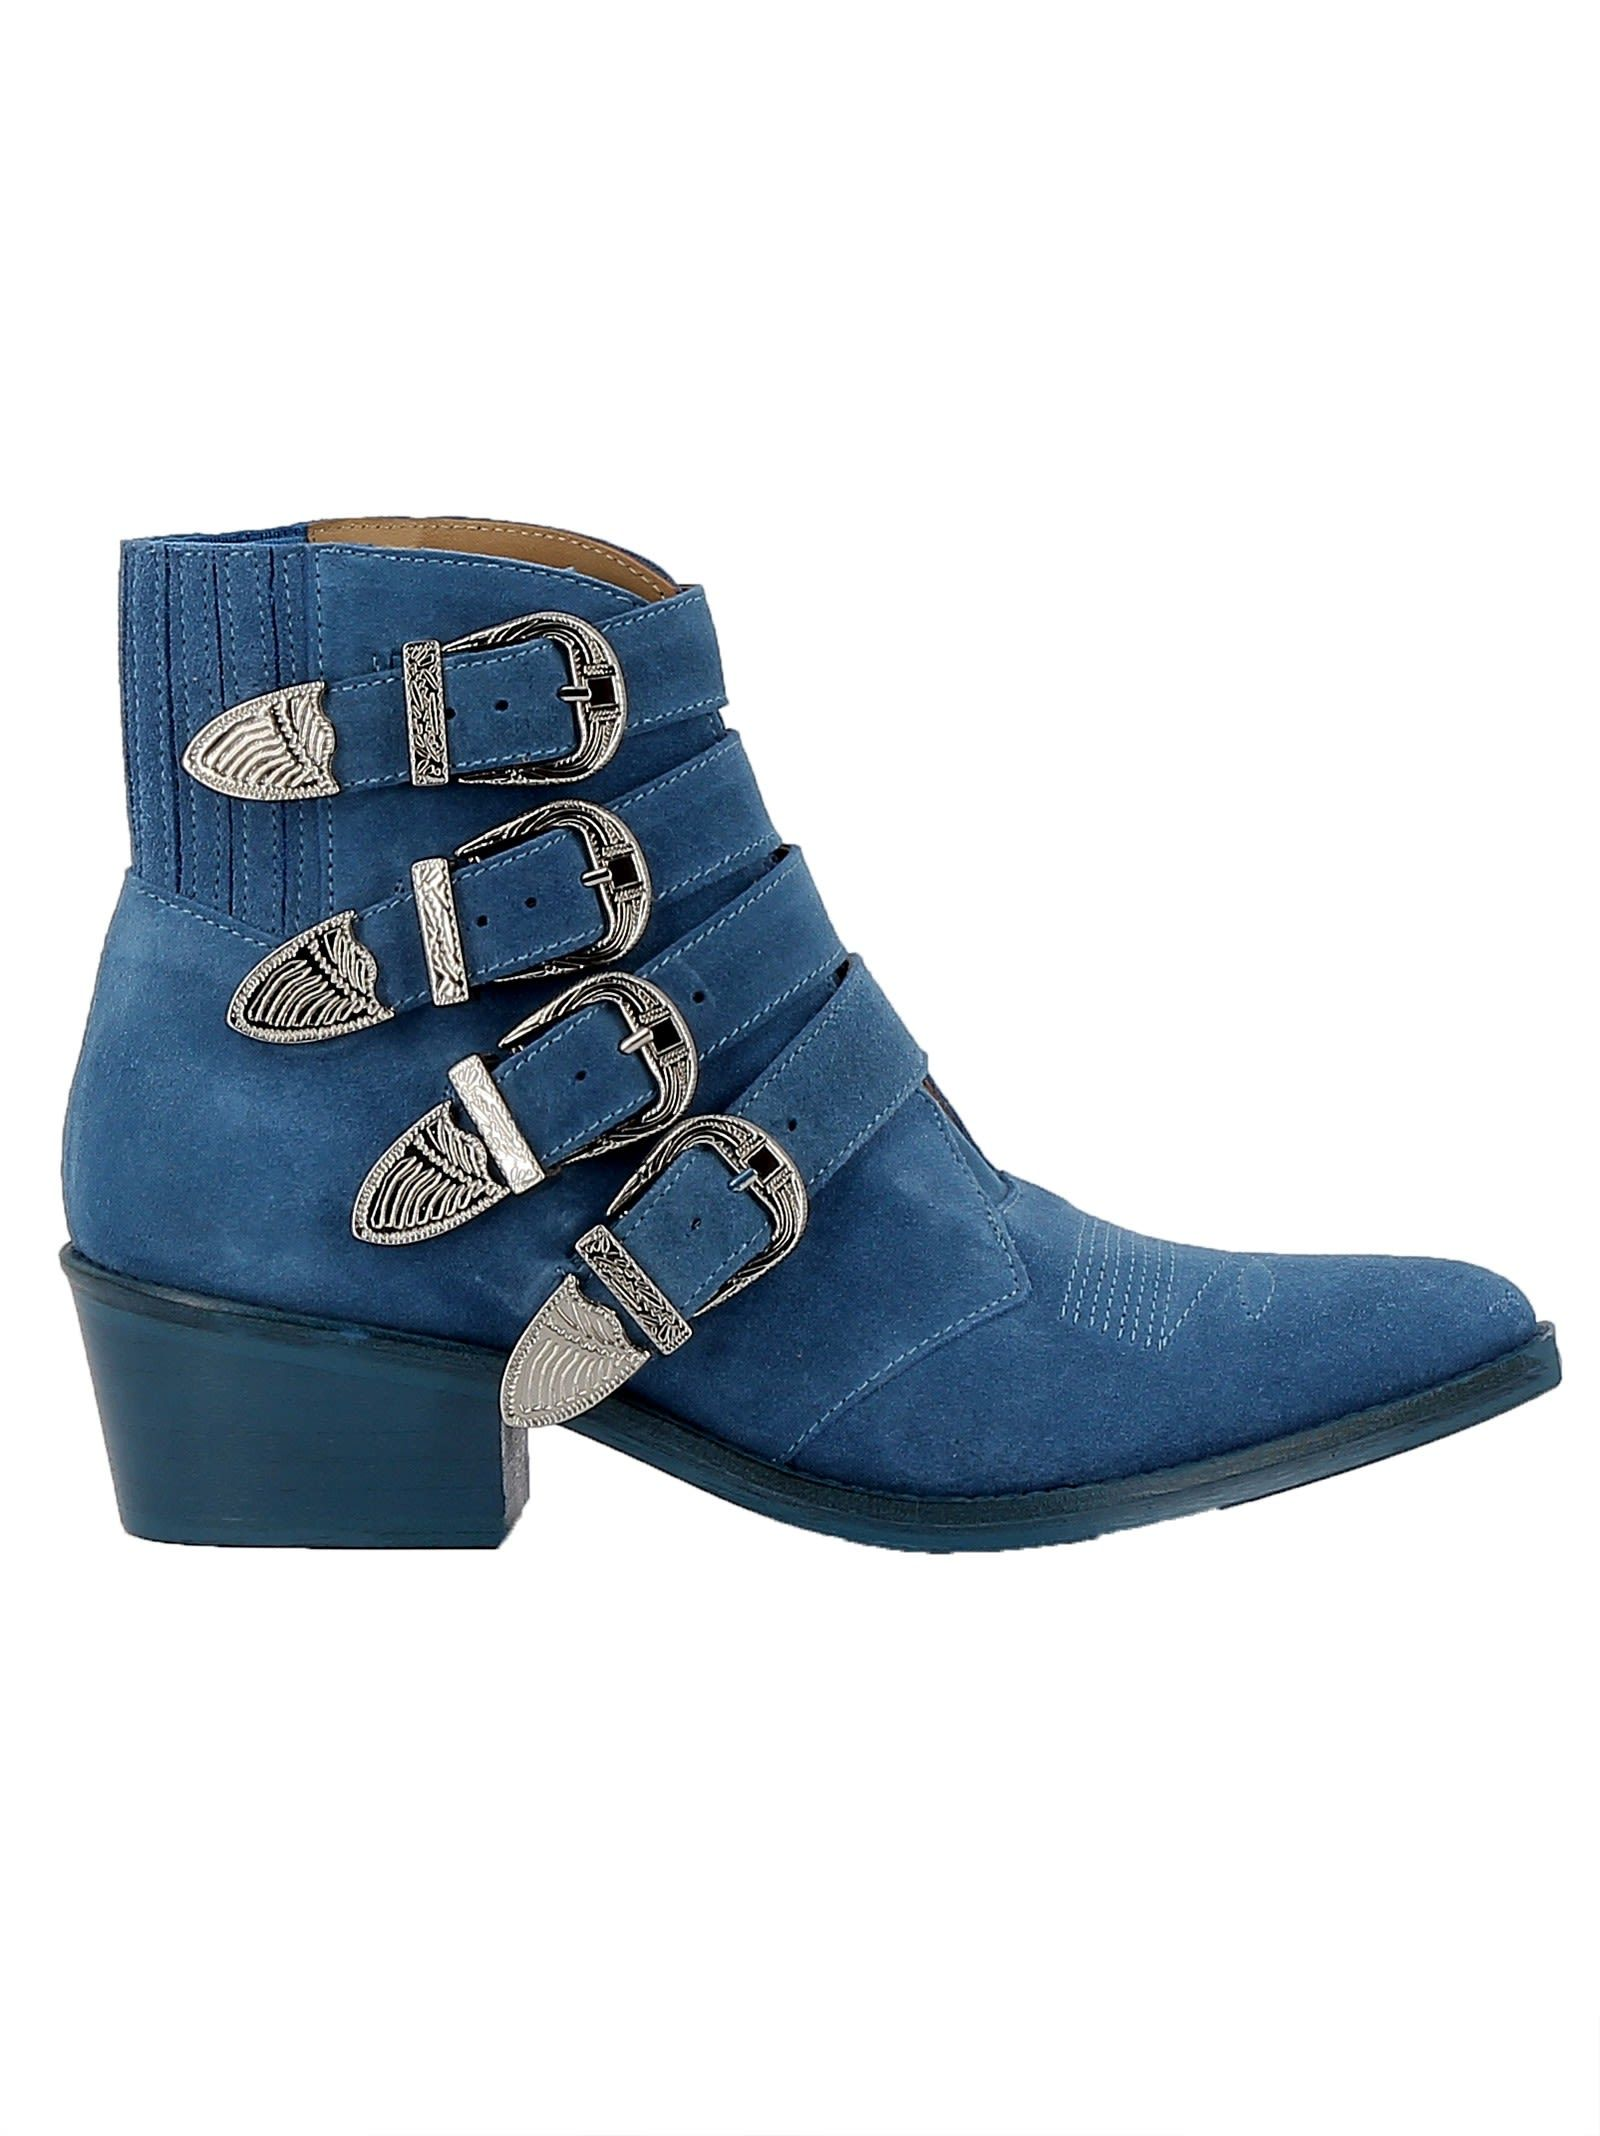 32597bbafe7 TOGA PULLA | Toga Pulla Toga Pulla Light Blue Suede Ankle Boots ...